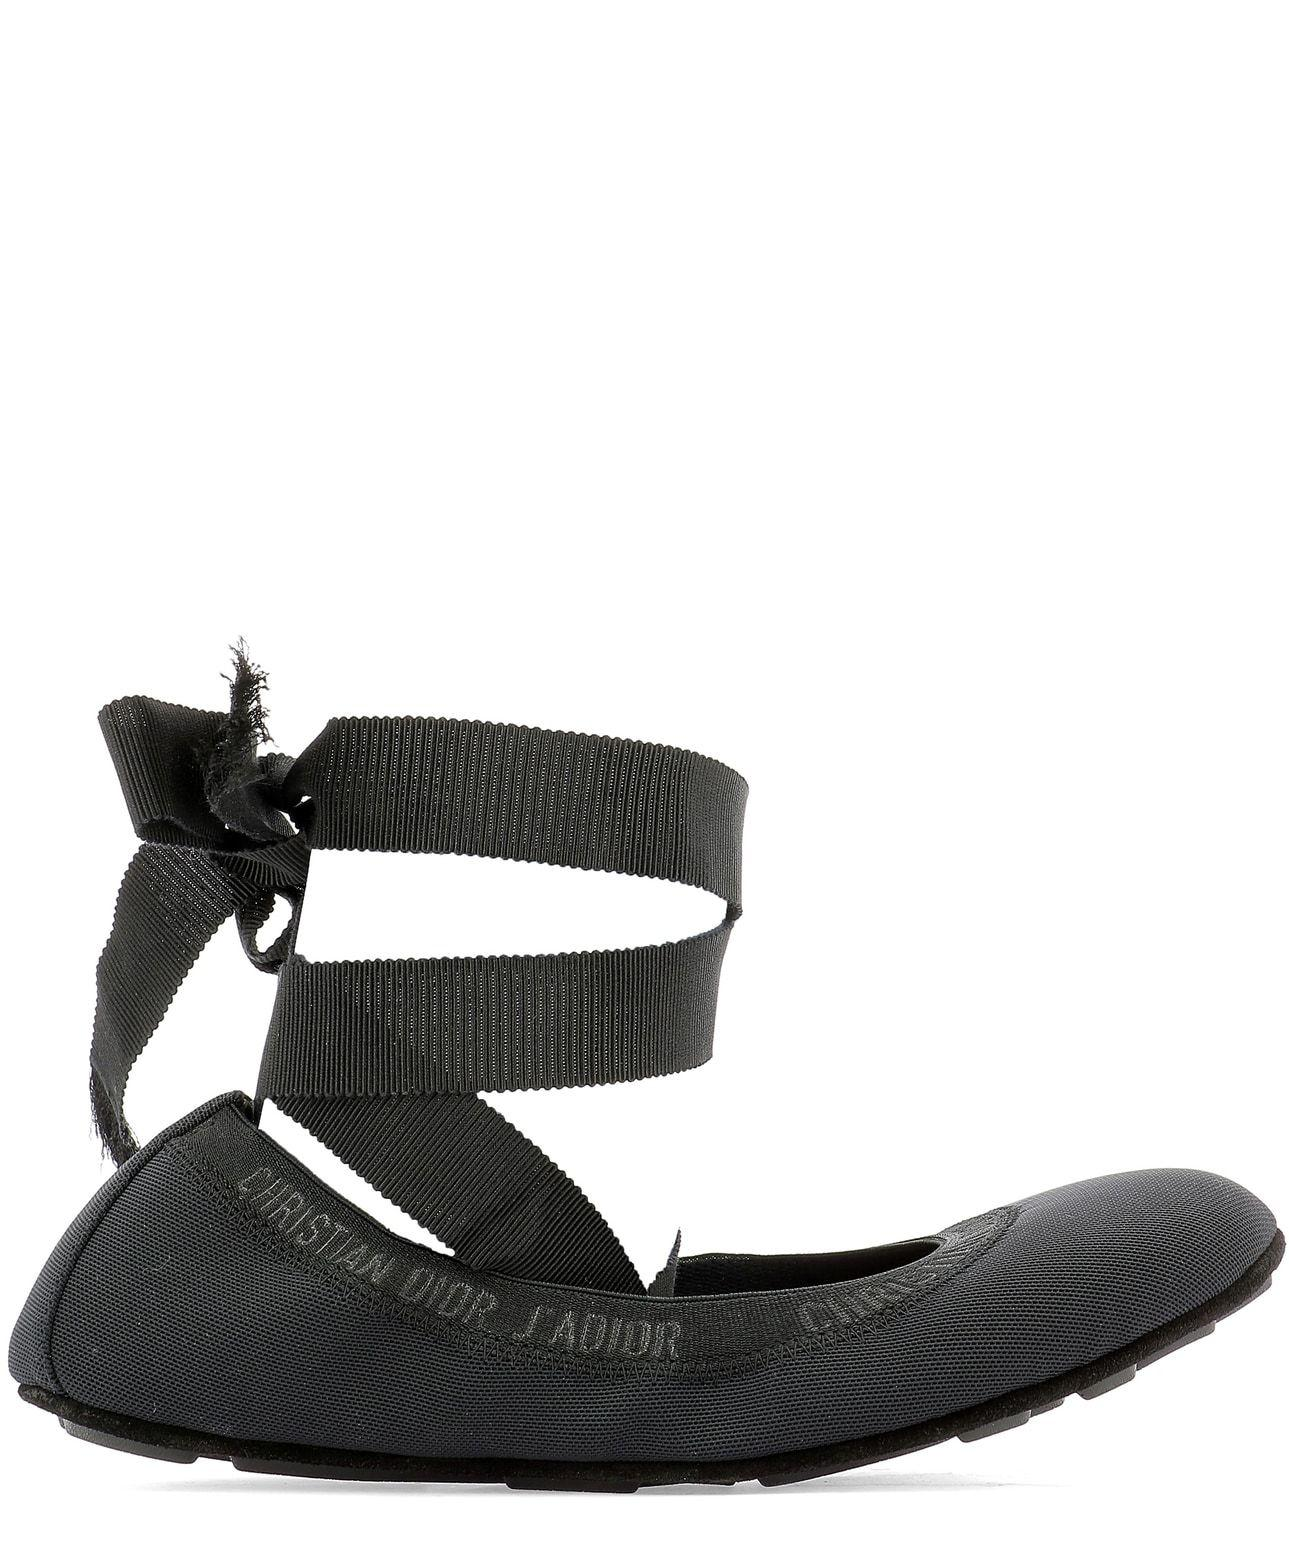 Dior Academy Lace-up Ballerina Shoes in